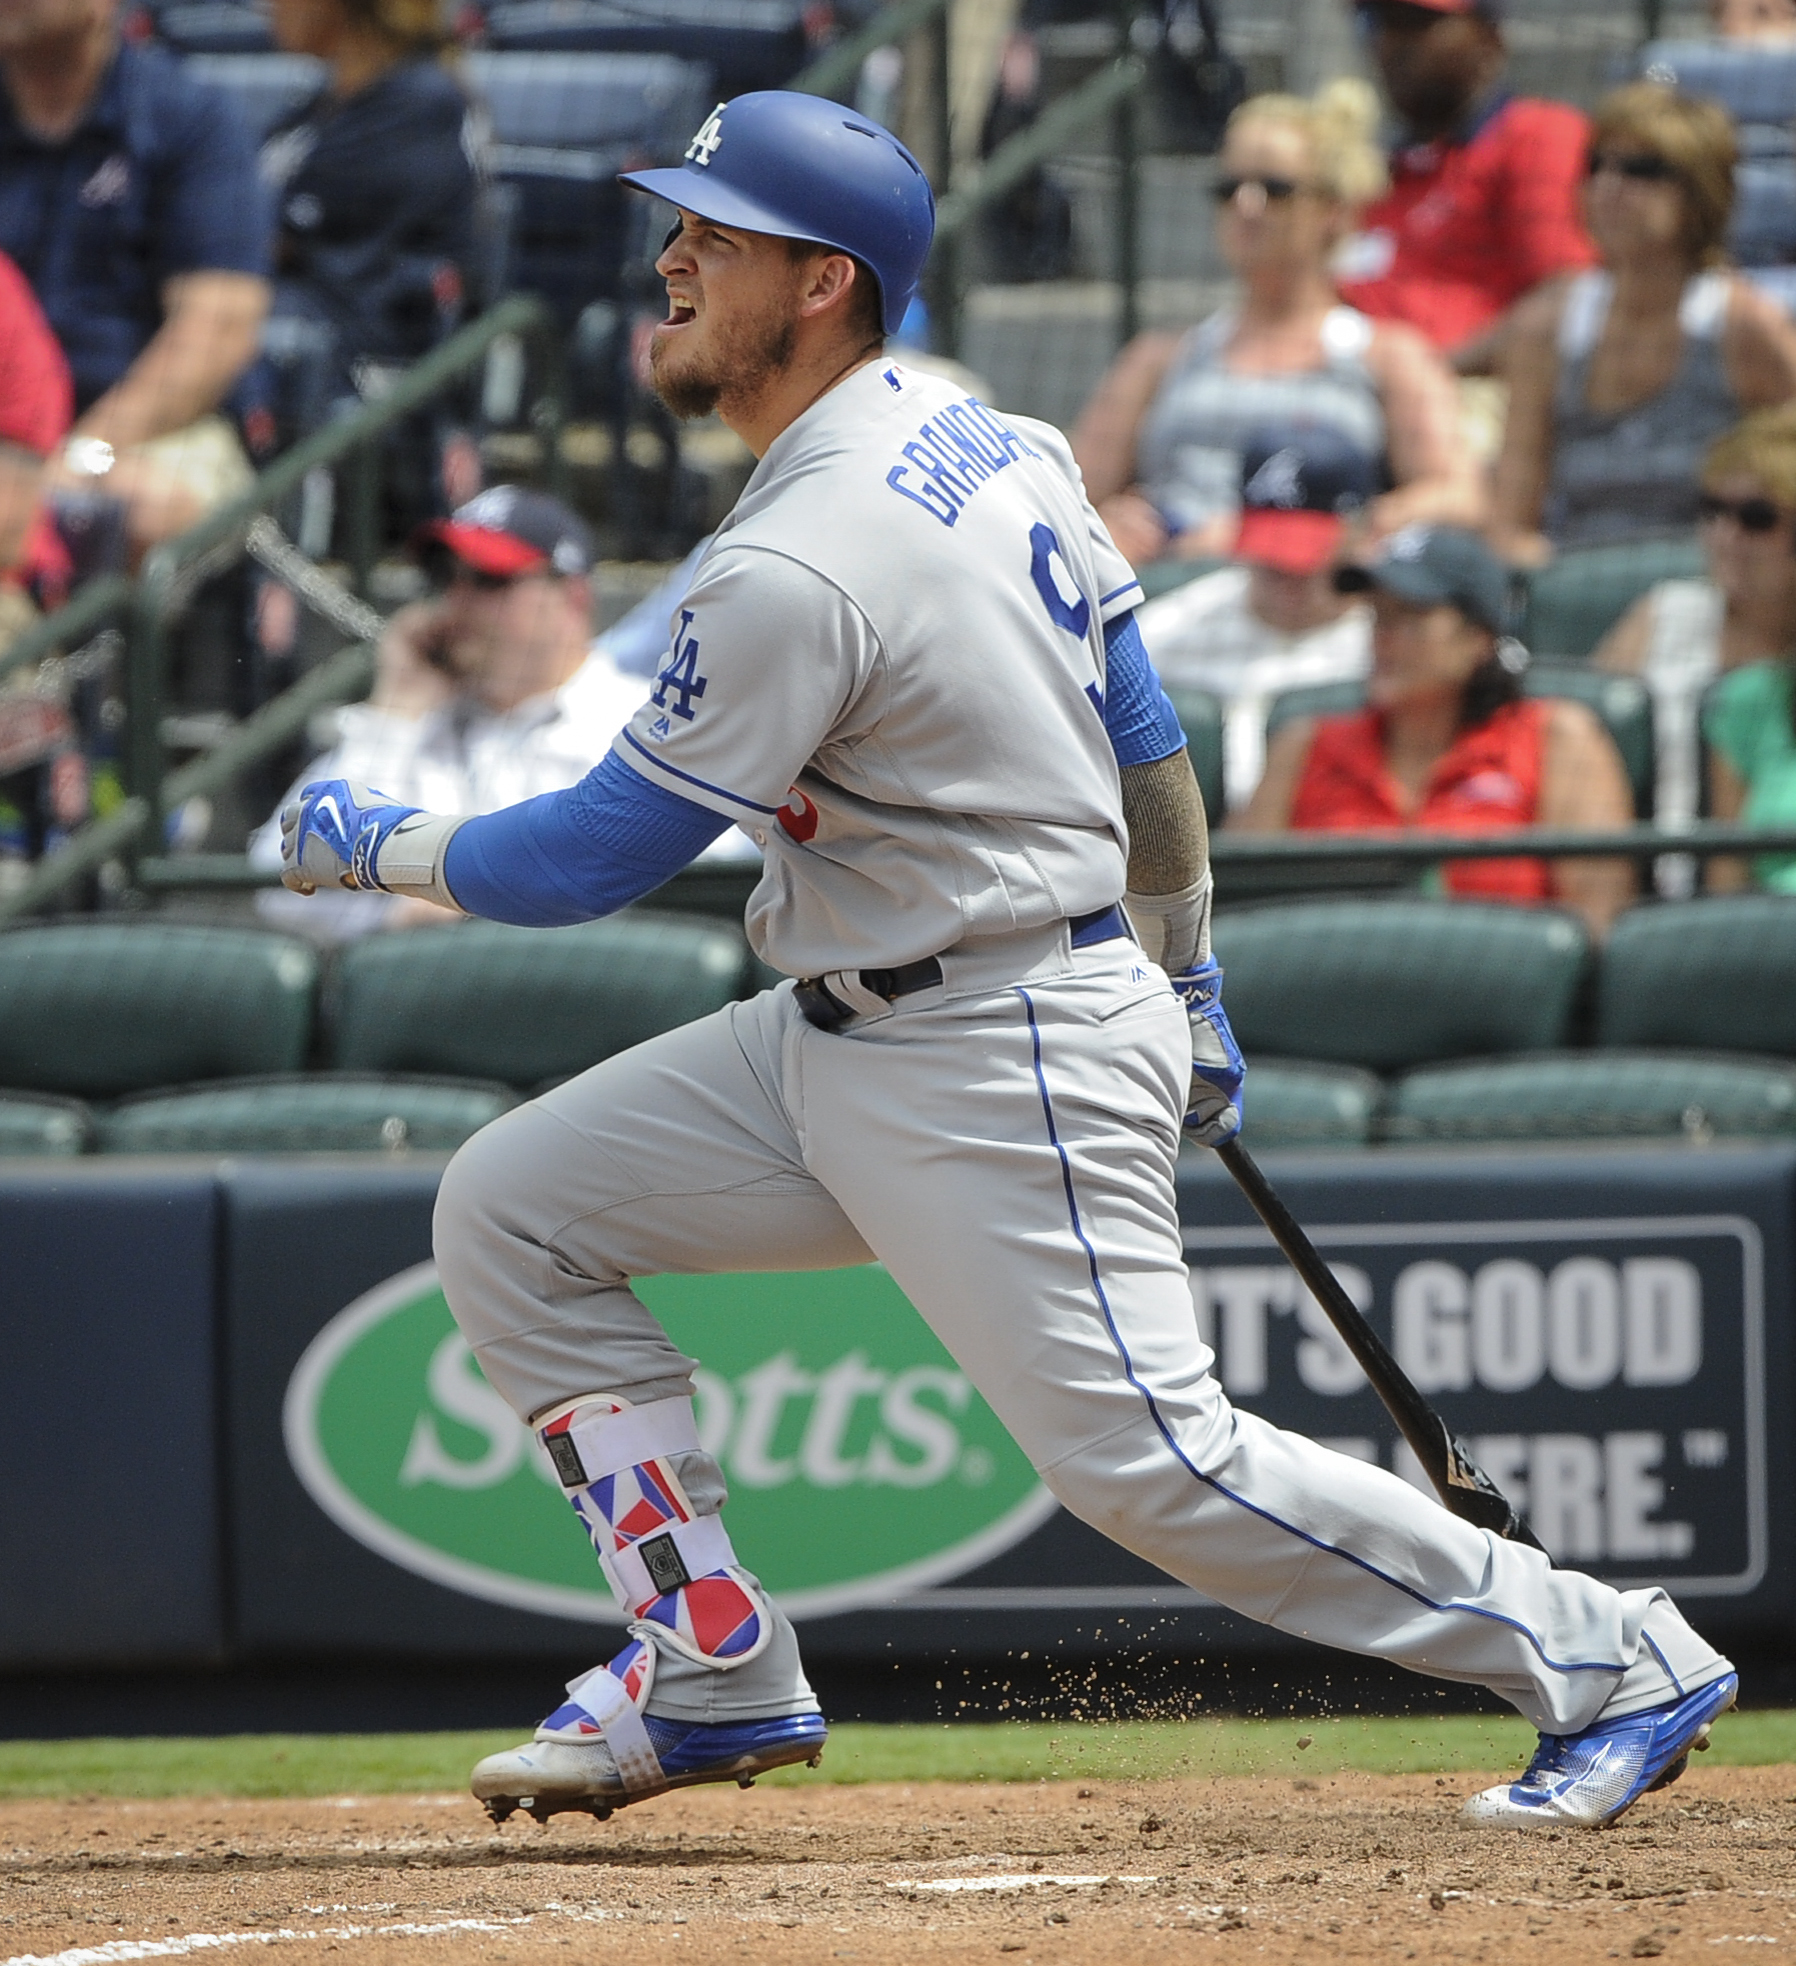 Los Angeles Dodgers' Yasmani Grandal hits in Enrique Hernandez on a line drive double to centerfield during the 10th inning of a baseball game for the winning run against the Atlanta Braves, Thursday, April 21, 2016, in Atlanta. (AP Photo/John Amis)